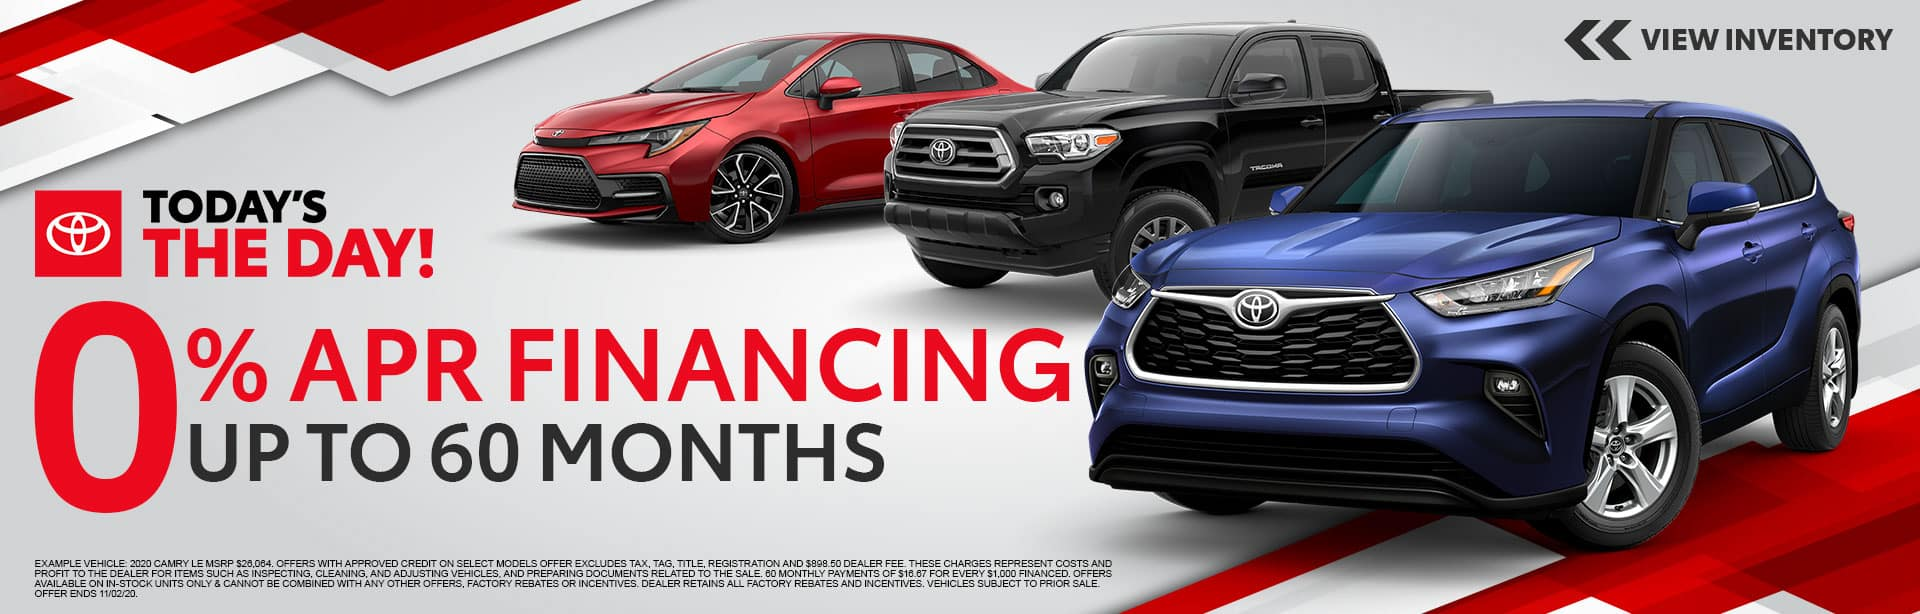 0% APR Financing for up to 60 Months at Bev Smith Toyota!